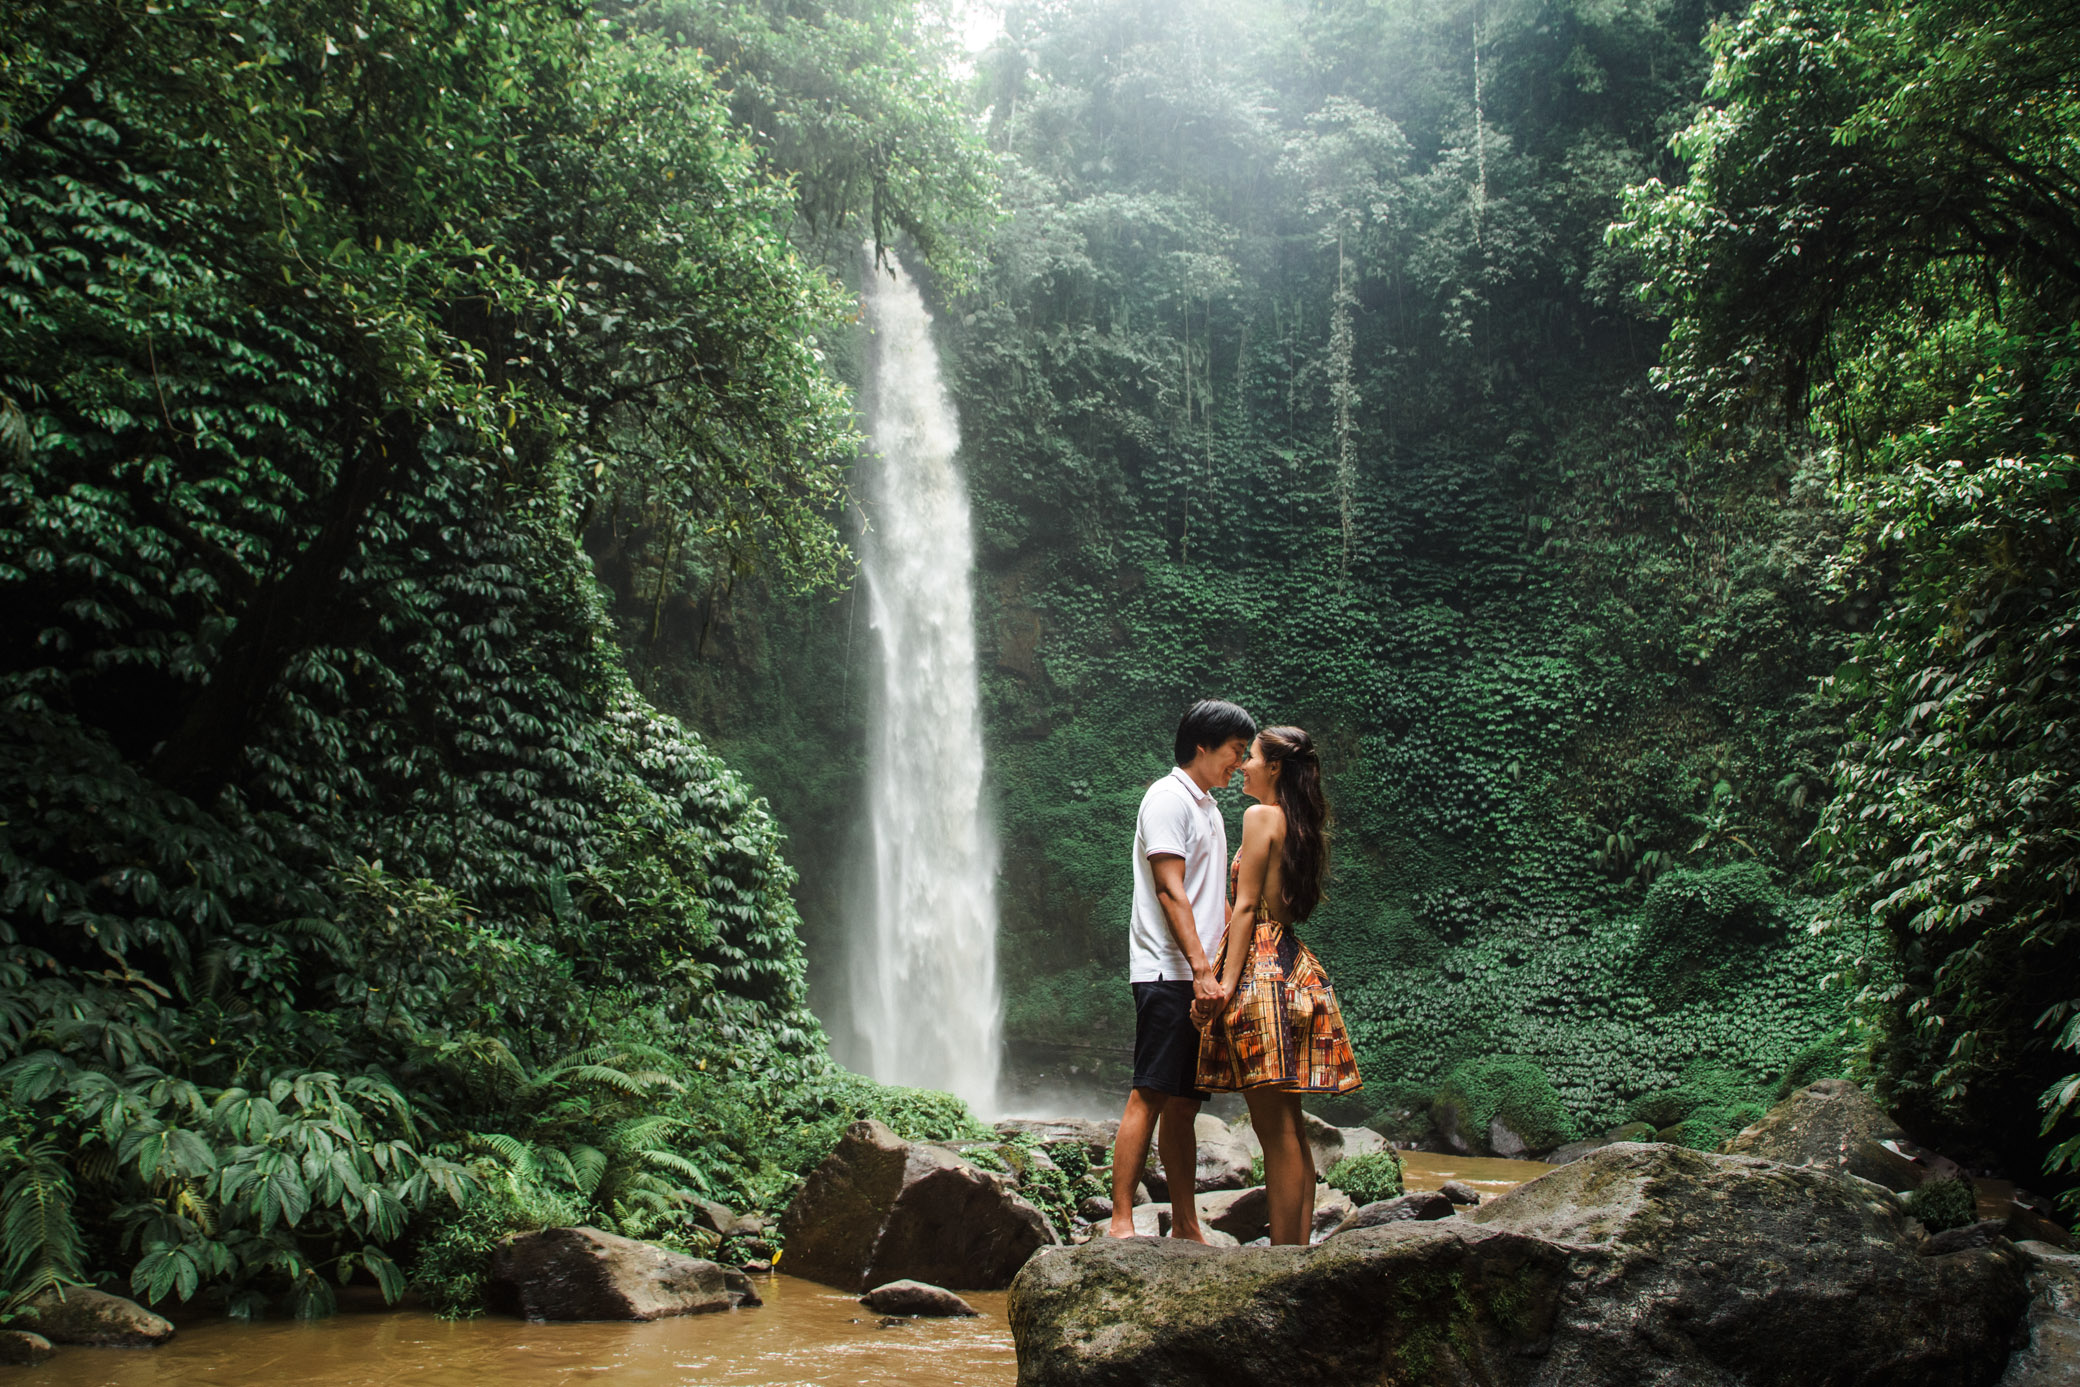 Loving Couple at the Waterfall